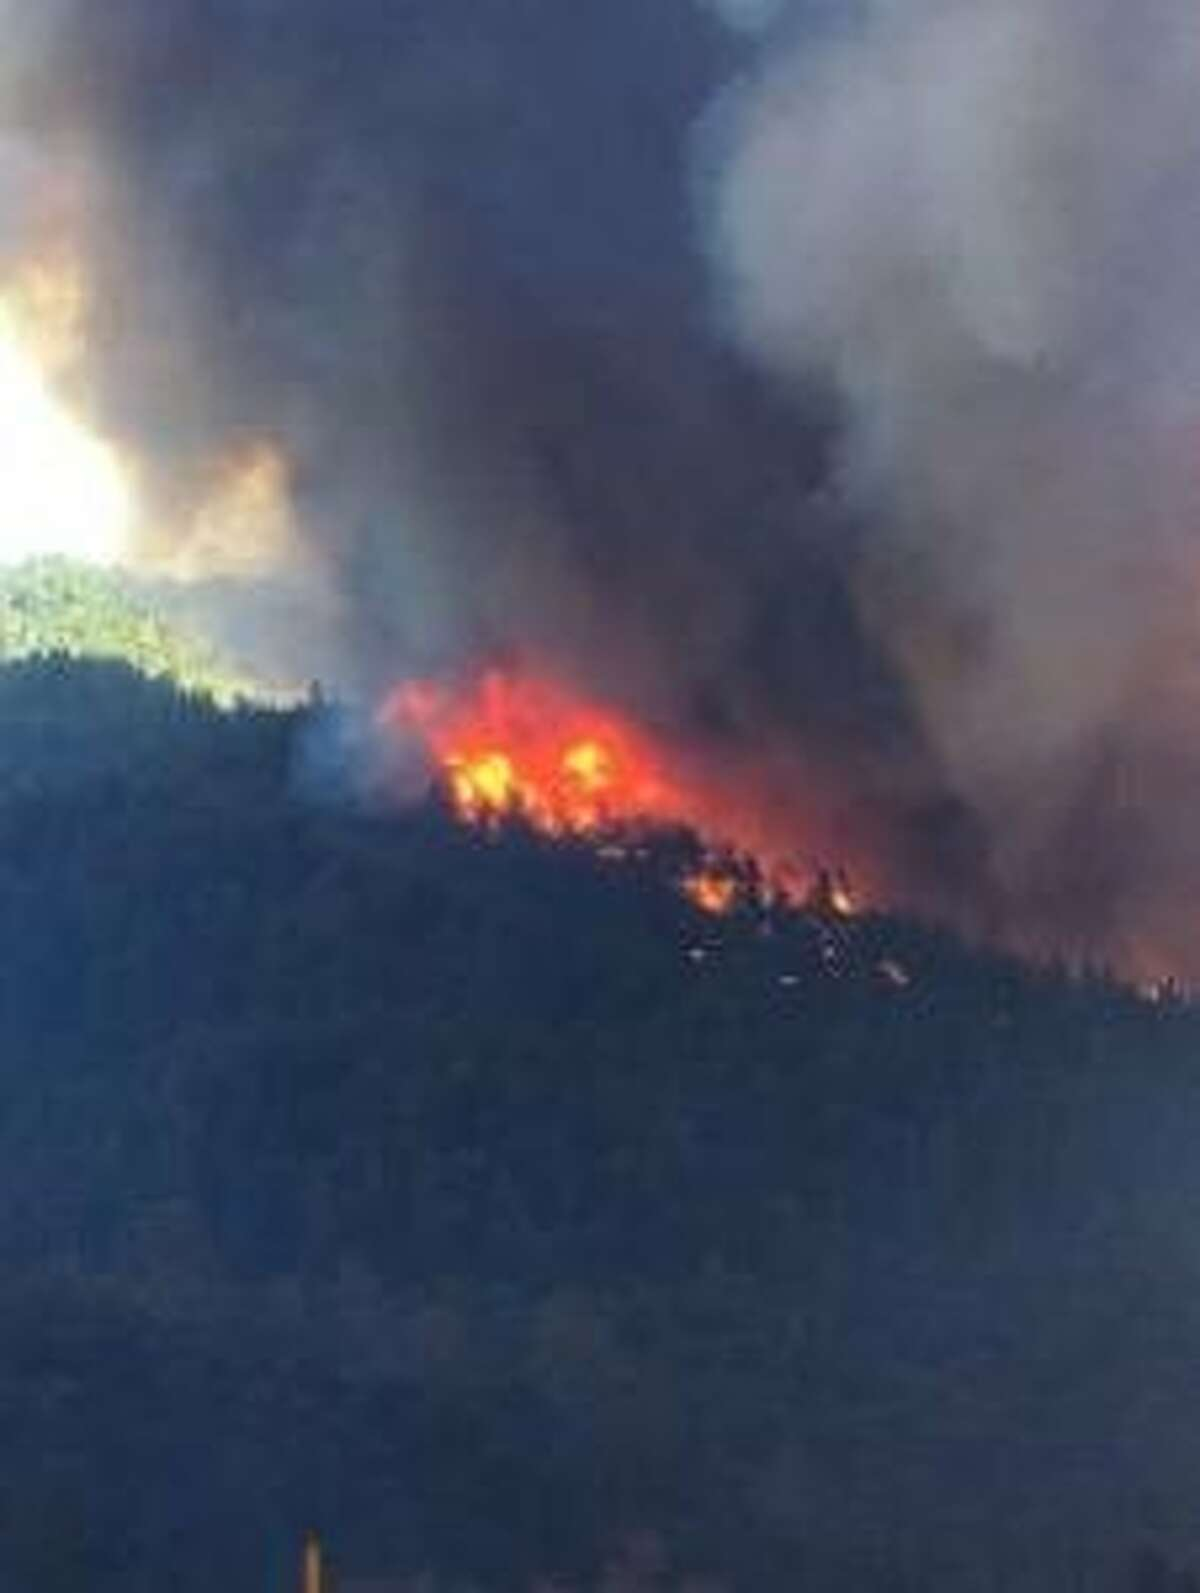 The Delta Fire, which started burning just before 1 p.m. Wednesday near Interstate 5 near theVollmersExit just north of Lakehead, reached 2,000 acres just after 7 p.m., according to Shasta-Trinity National Forest officials.